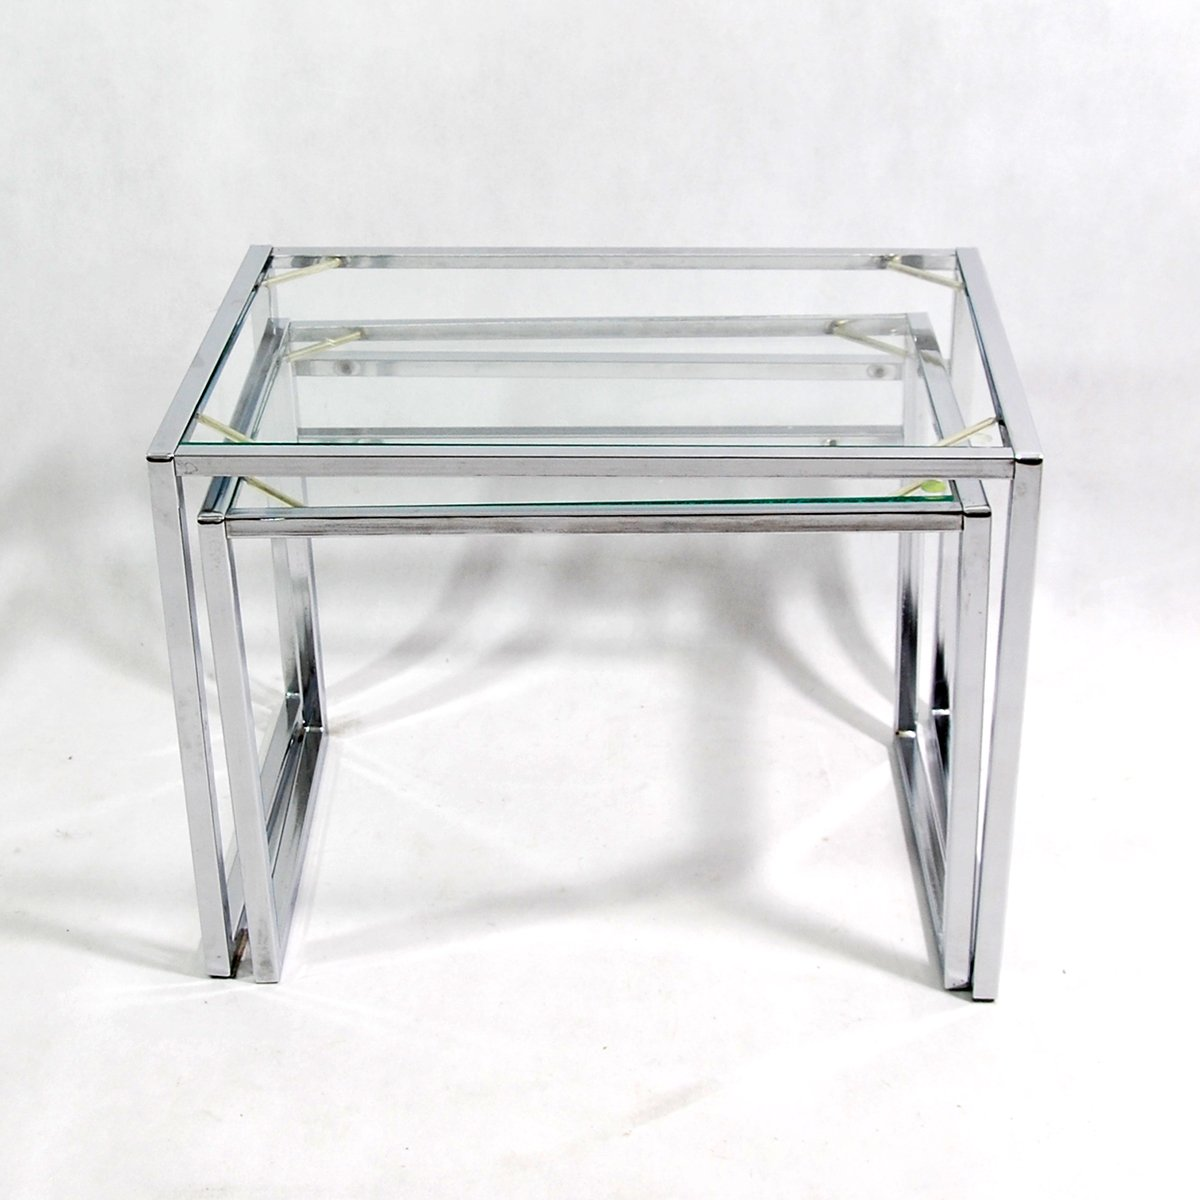 Modernist nesting tables from ikea 1960s for sale at pamono modernist nesting tables from ikea 1960s watchthetrailerfo